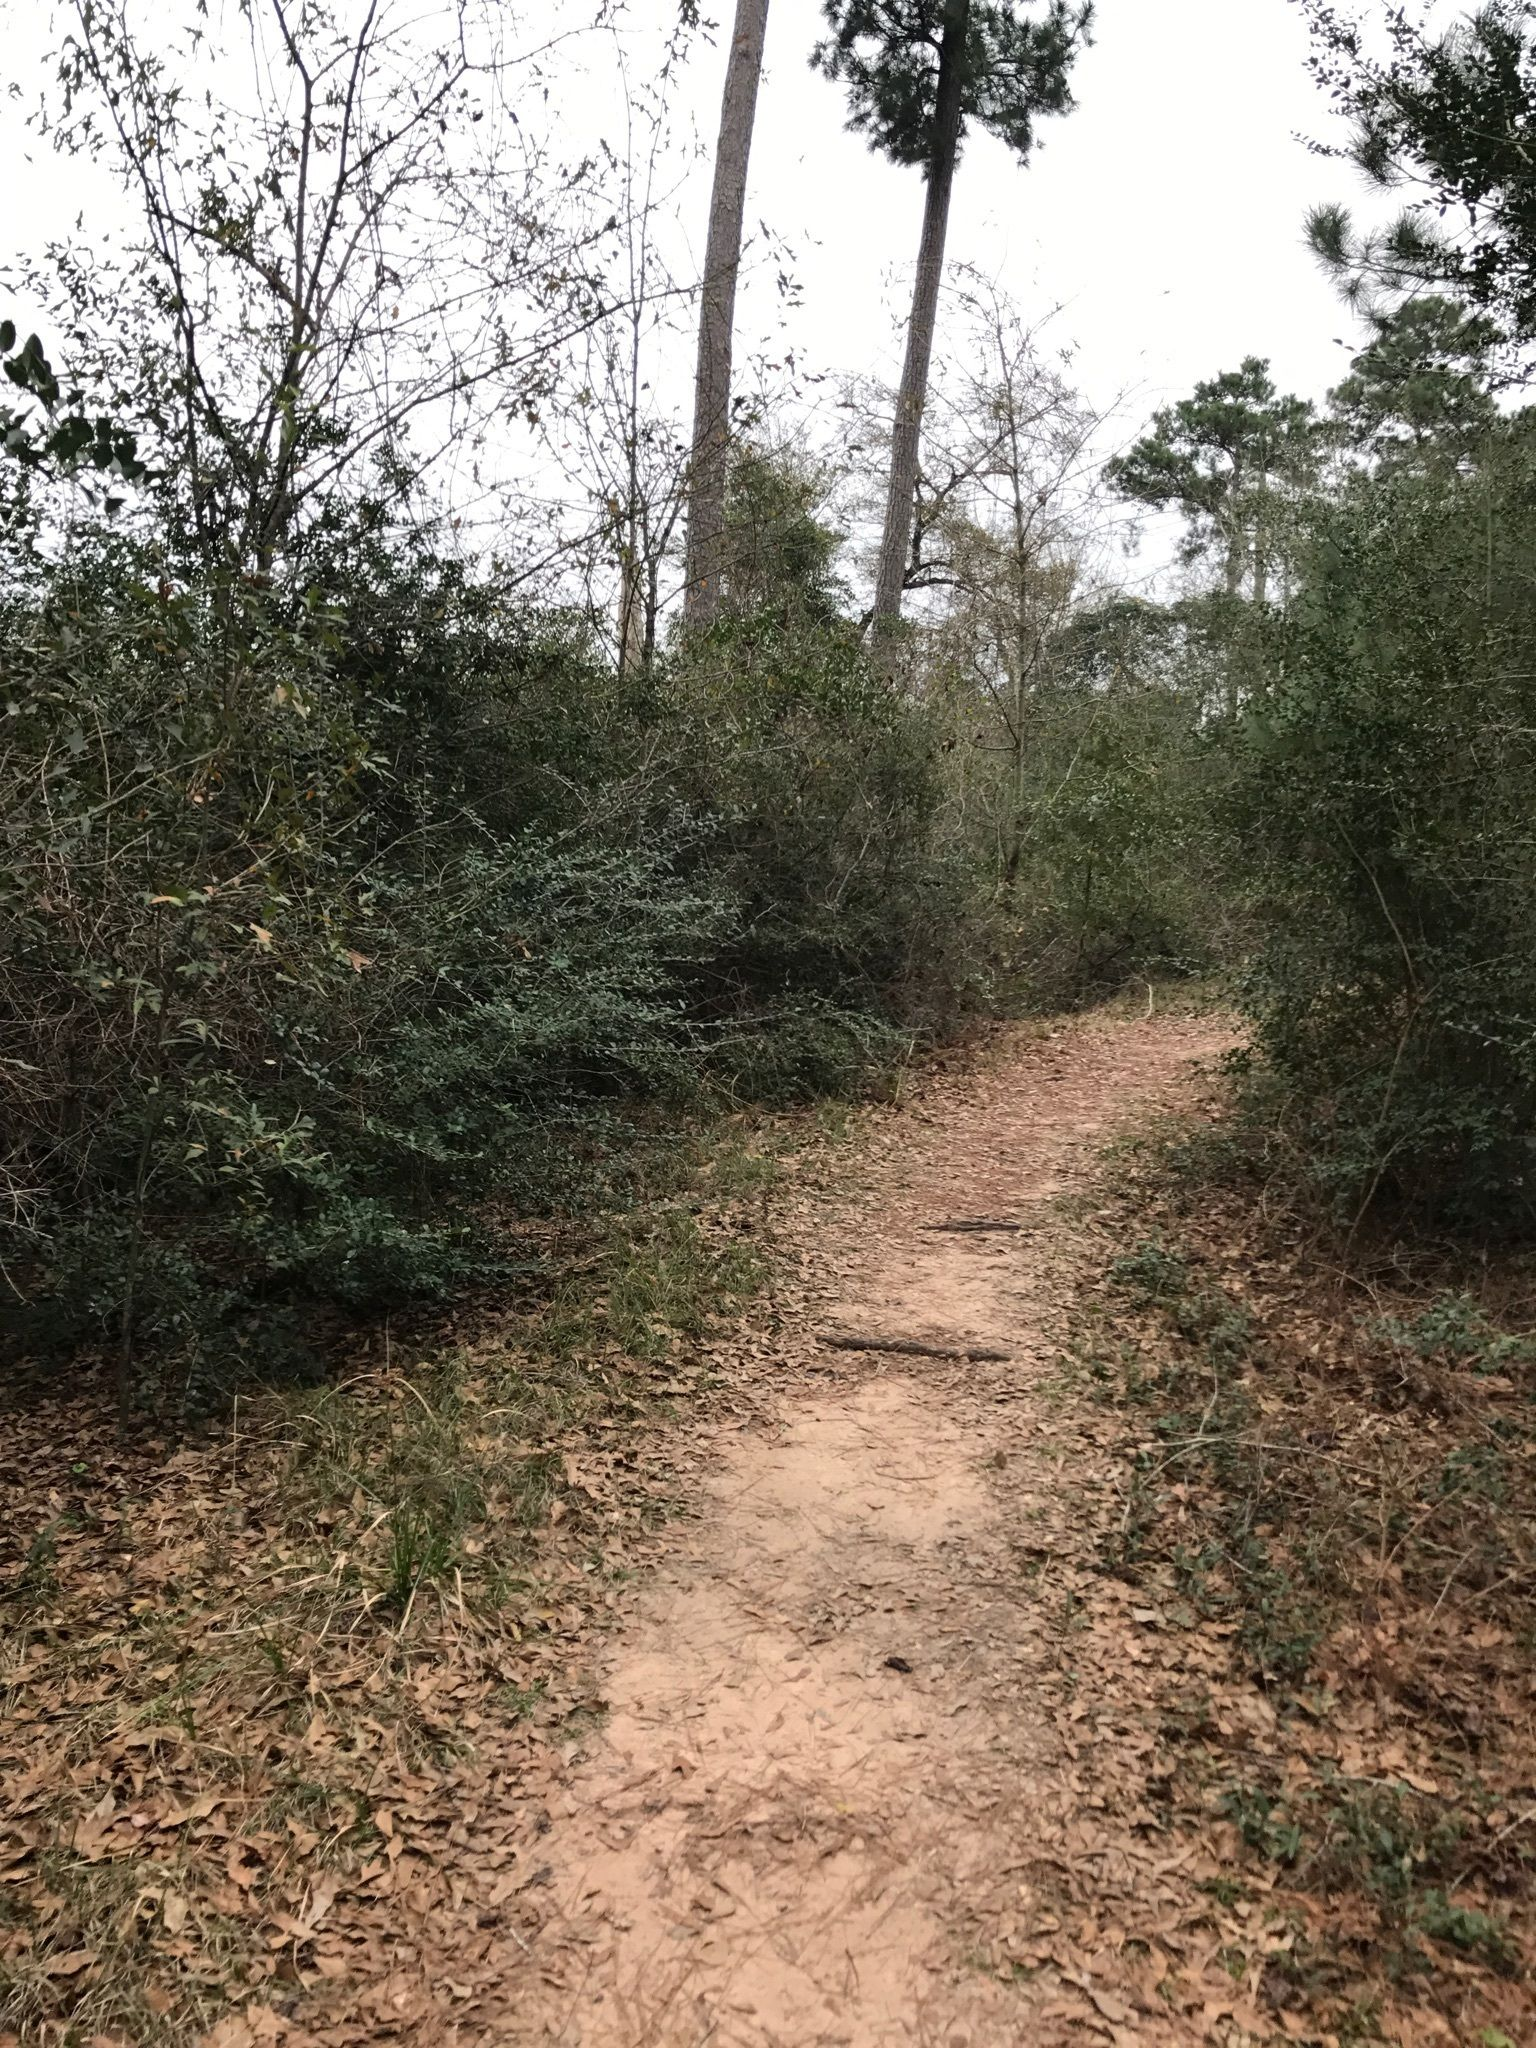 Cypress Creek Trail - Texas | AllTrails on map of rivergate, map of fairview, map of waters edge, map of maplewood, map of lakeside, map of centerville, map of westfield, map of riverdale, map of san marcos river, map of wekiva, map of lamar, map of riverside, map of park place, map of summerfield, map of spring lake, map of greenbriar, map of jacobs well, map of riverbend, map of downtown bradenton, map of the orange river,